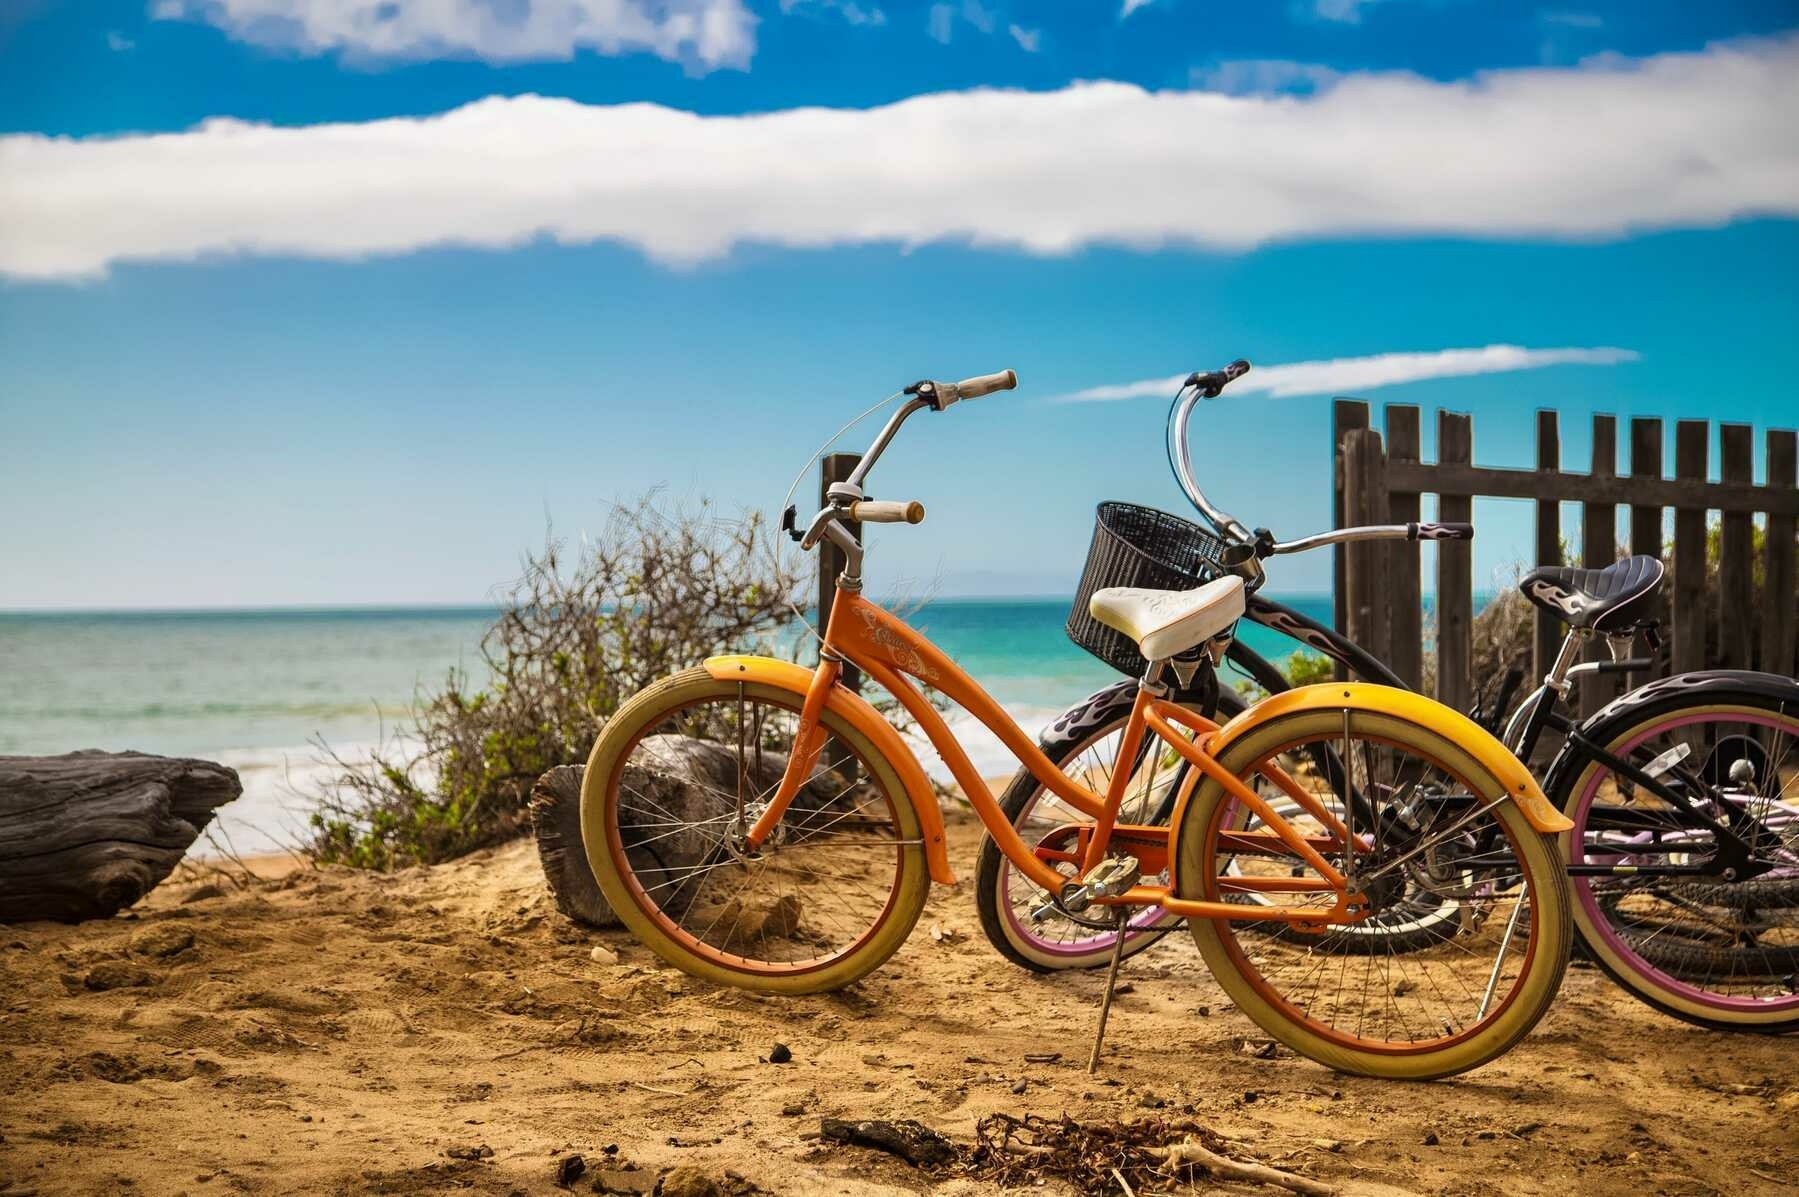 Bicycles resting on a sunny beach.